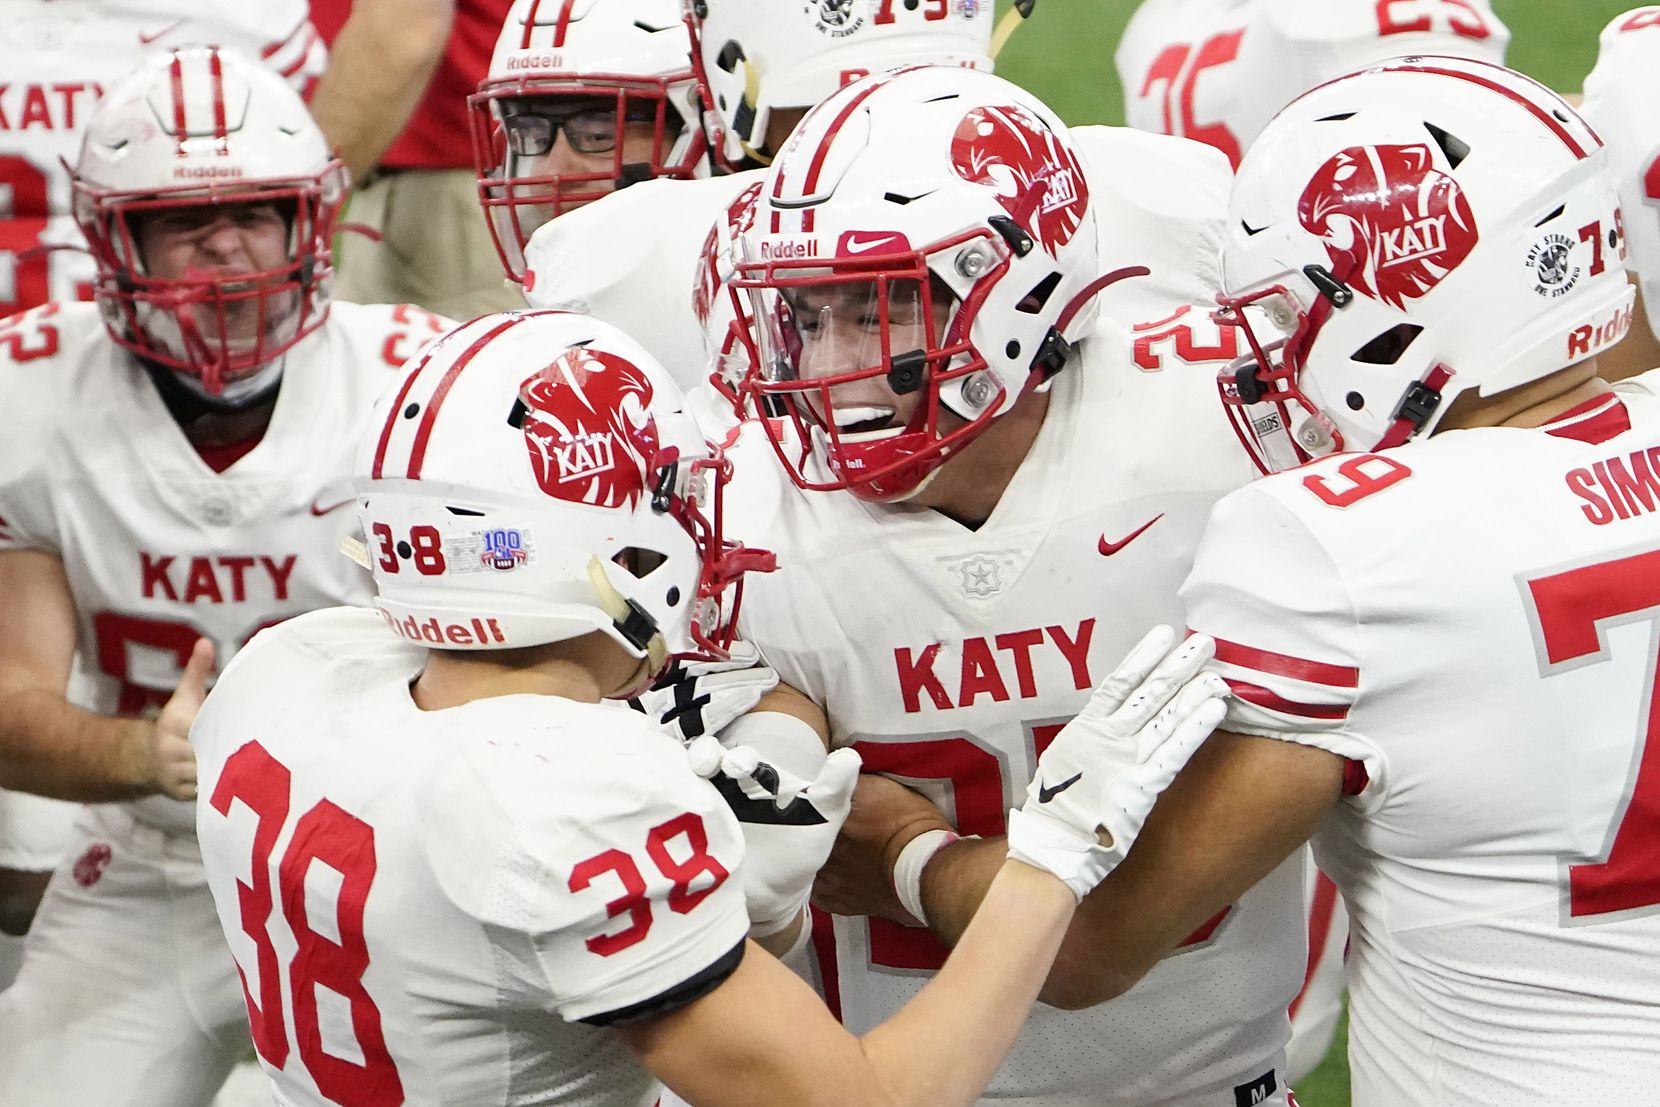 Katy linebacker Shepherd Bowling (25) celebrates with teammates after interceptin a pass intended for Cedar Hill wide receiver Anthony Thomas IV during the first half of the Class 6A Division II state football championship game at AT&T Stadium on Saturday, Jan. 16, 2021, in Arlington, Texas.